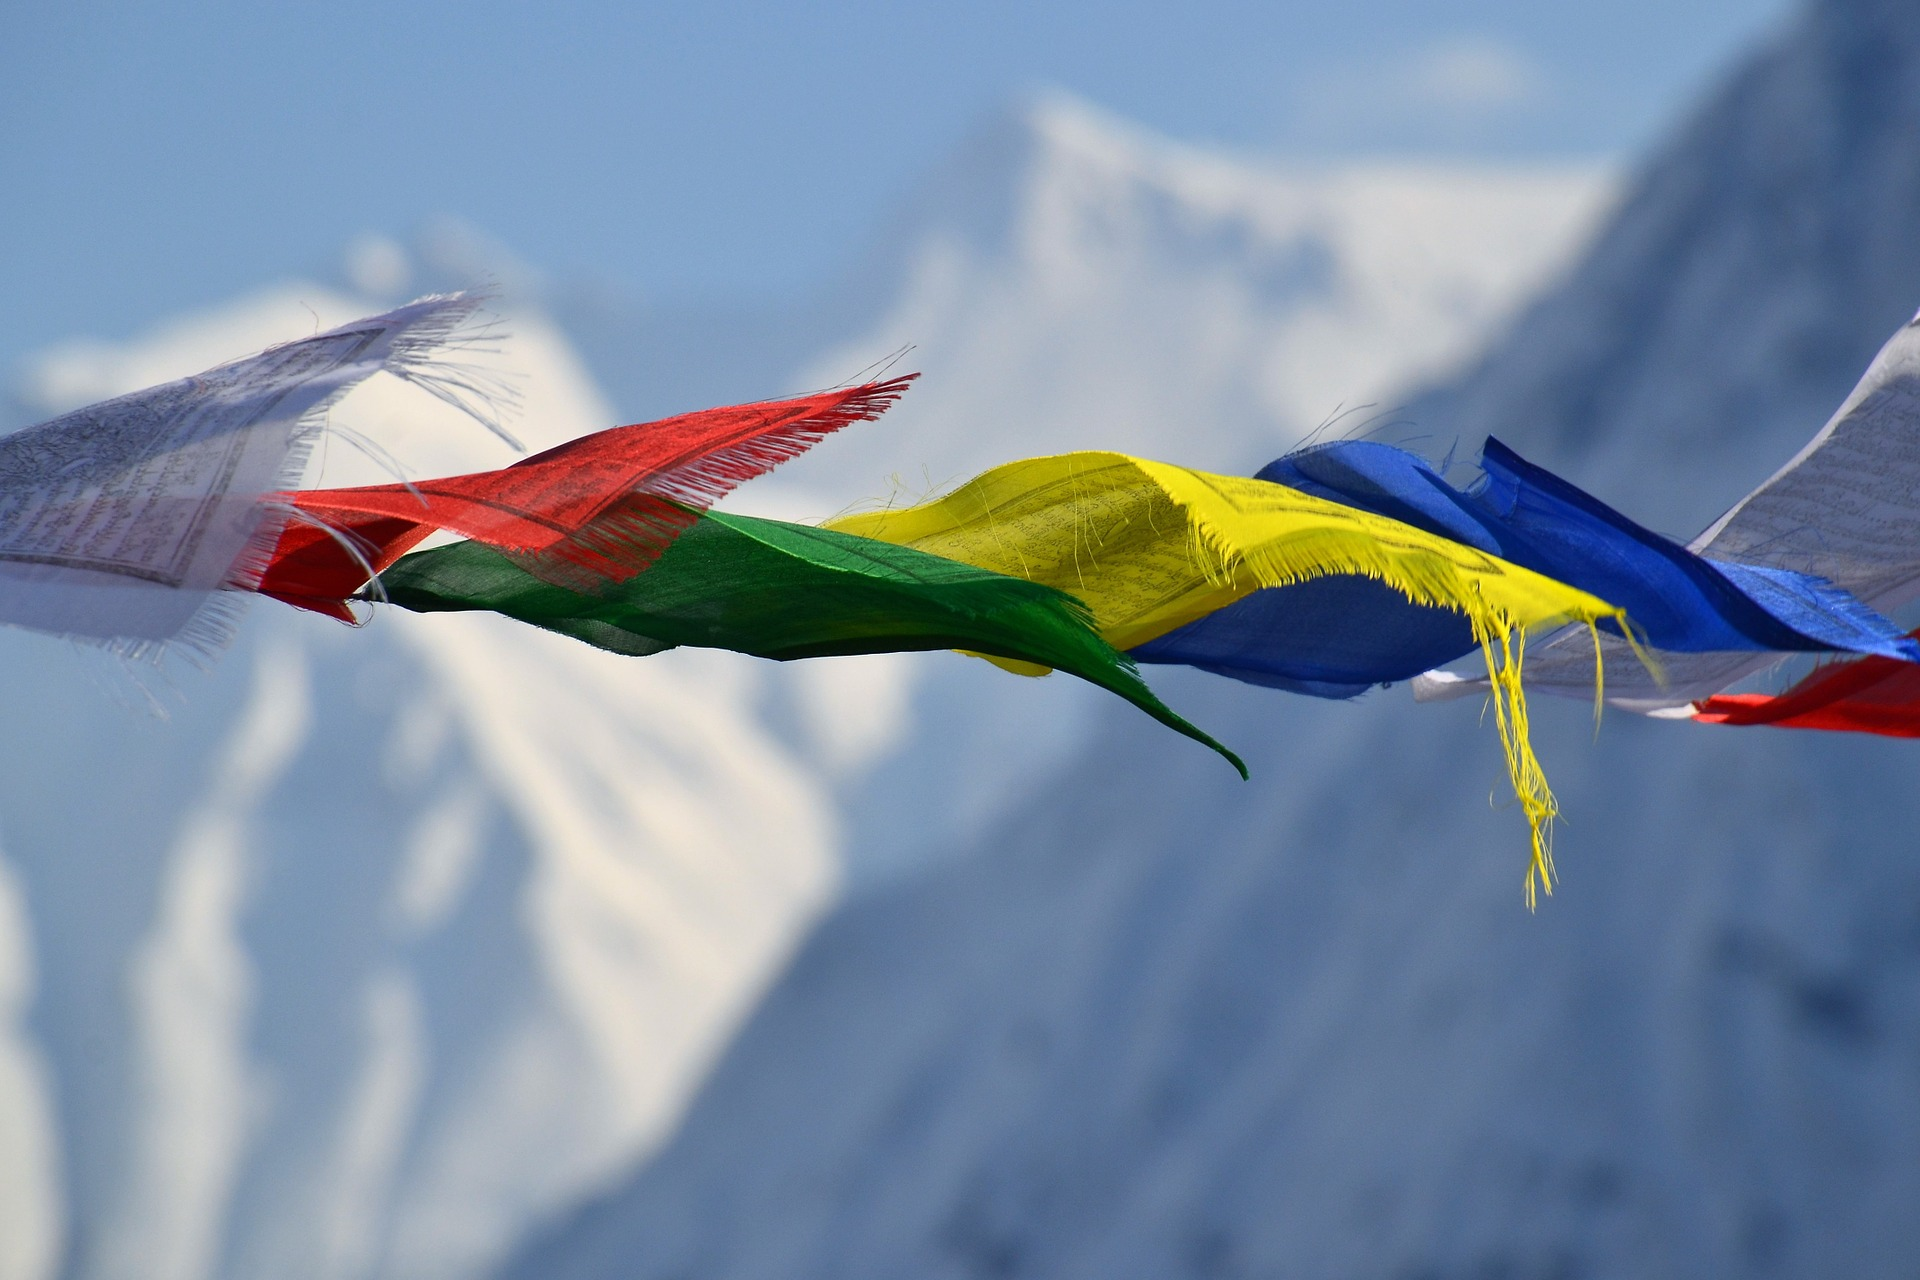 Colourful Flags | Backpacking with Bacon | Backpacking in Nepal